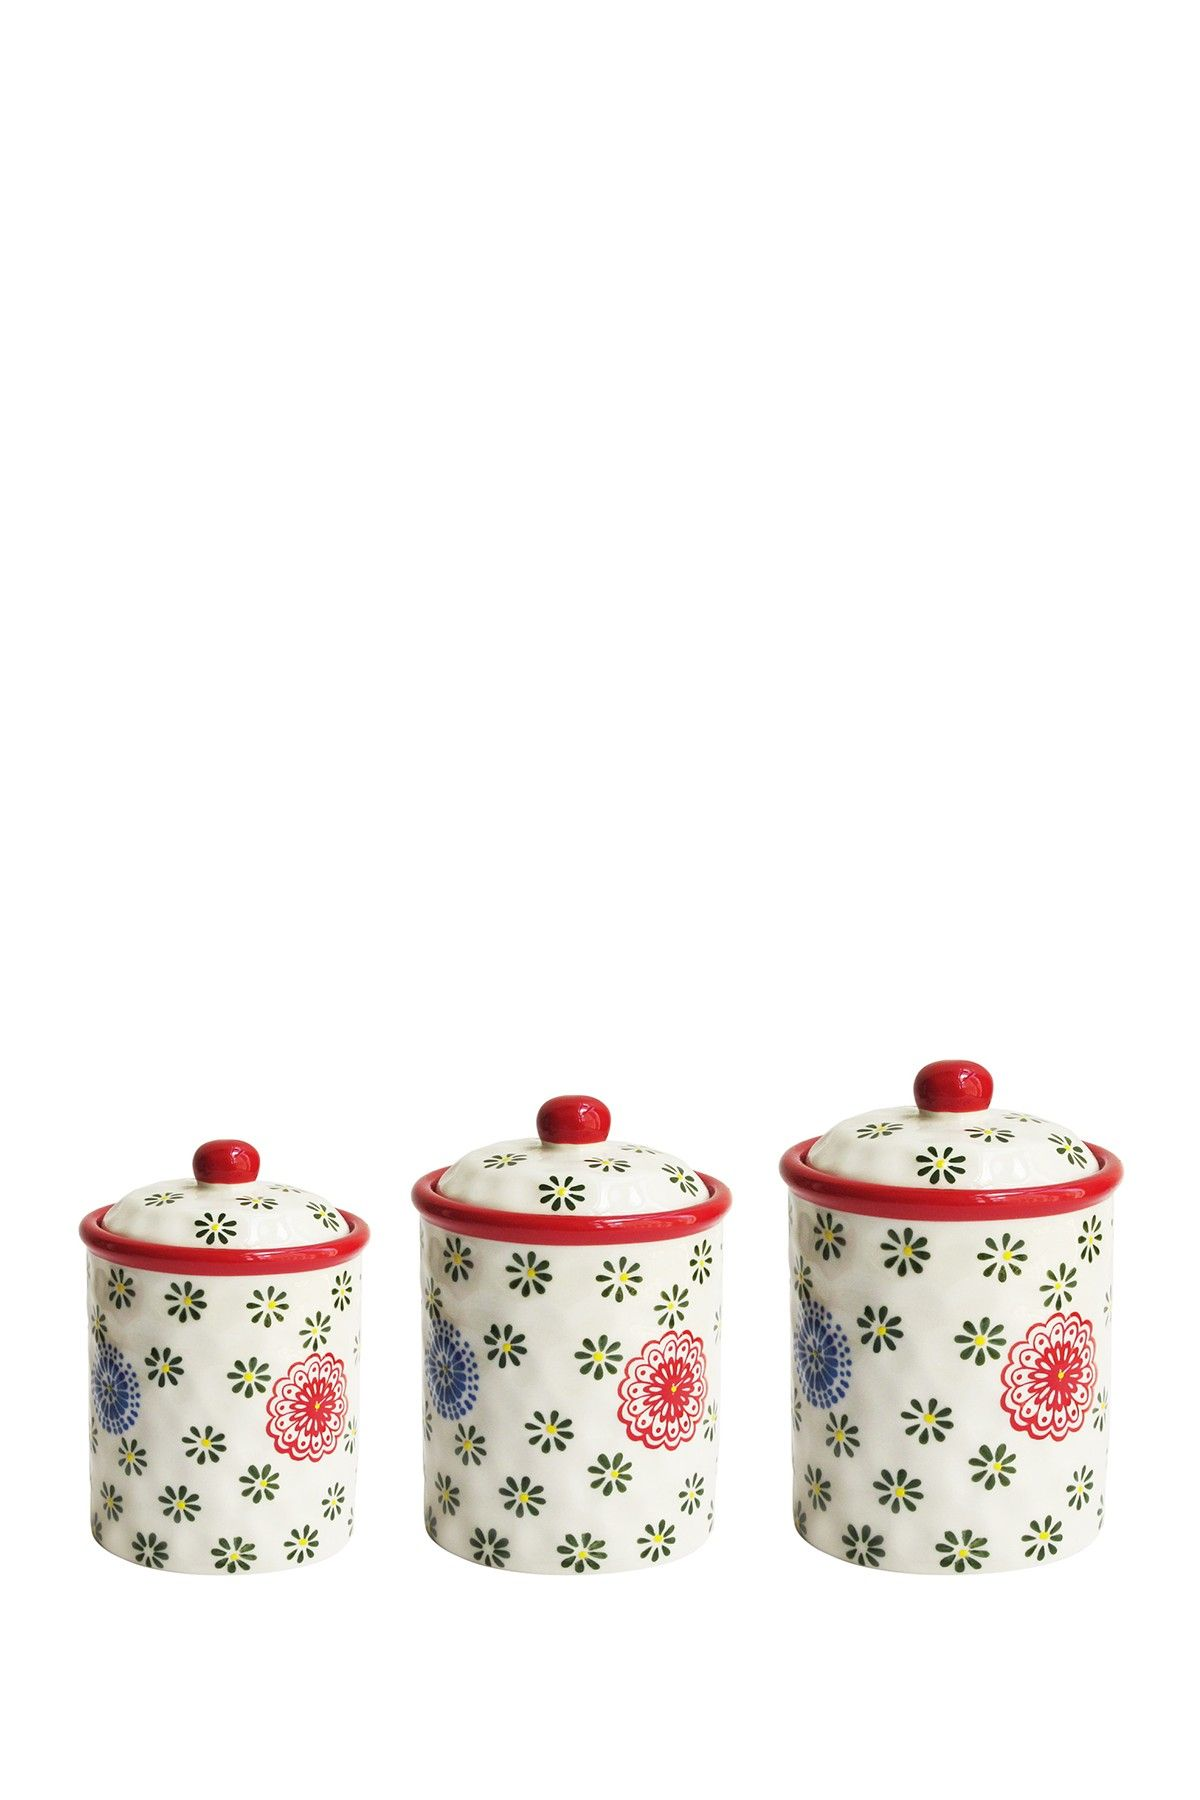 Tuscan old world drake design medium berry kitchen canisters set of 3 - Red Berries Canister Set Of 3 By Jay Import On Hautelook